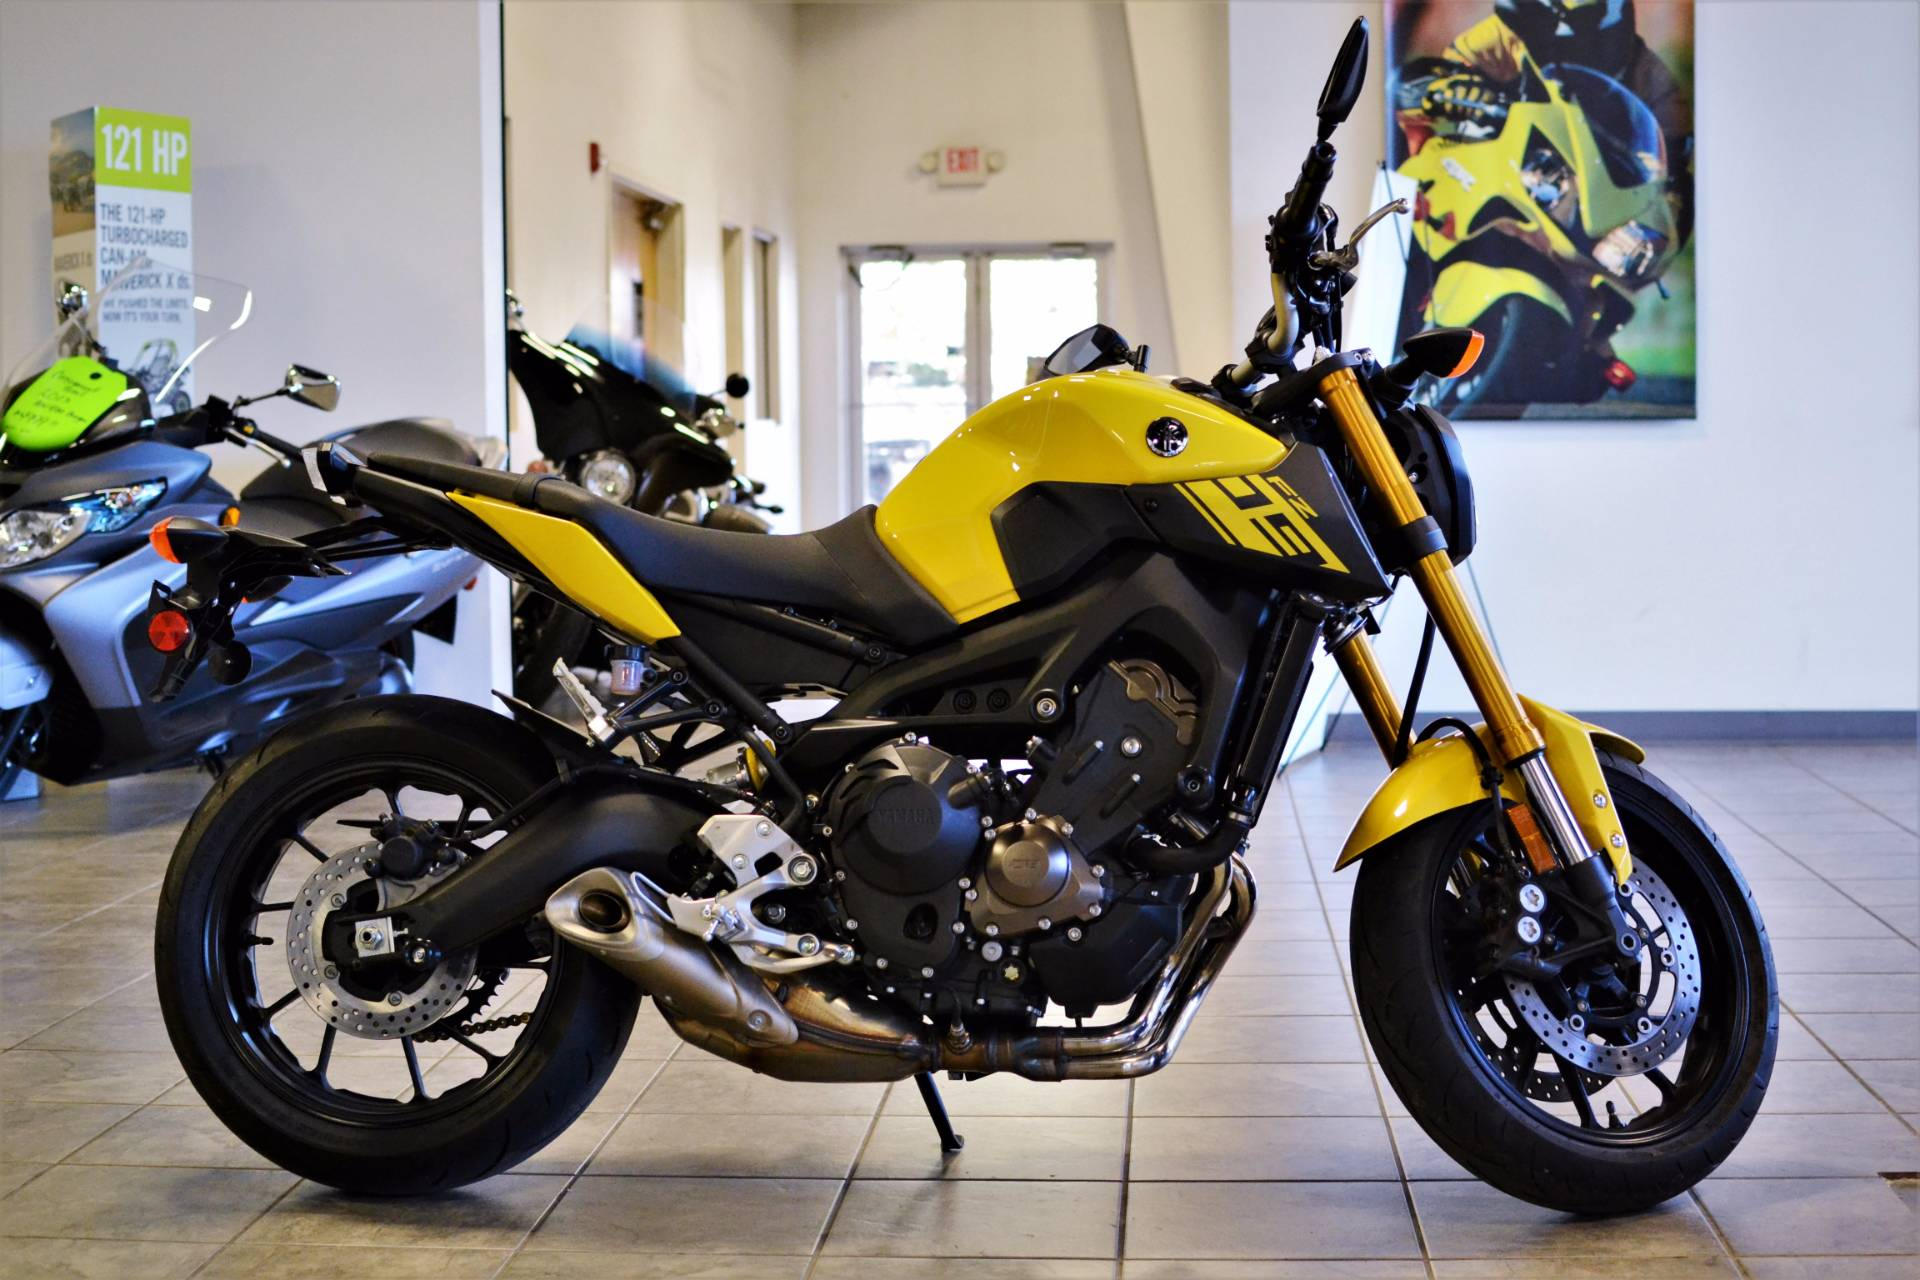 2015 Yamaha FZ-09 for sale 63383